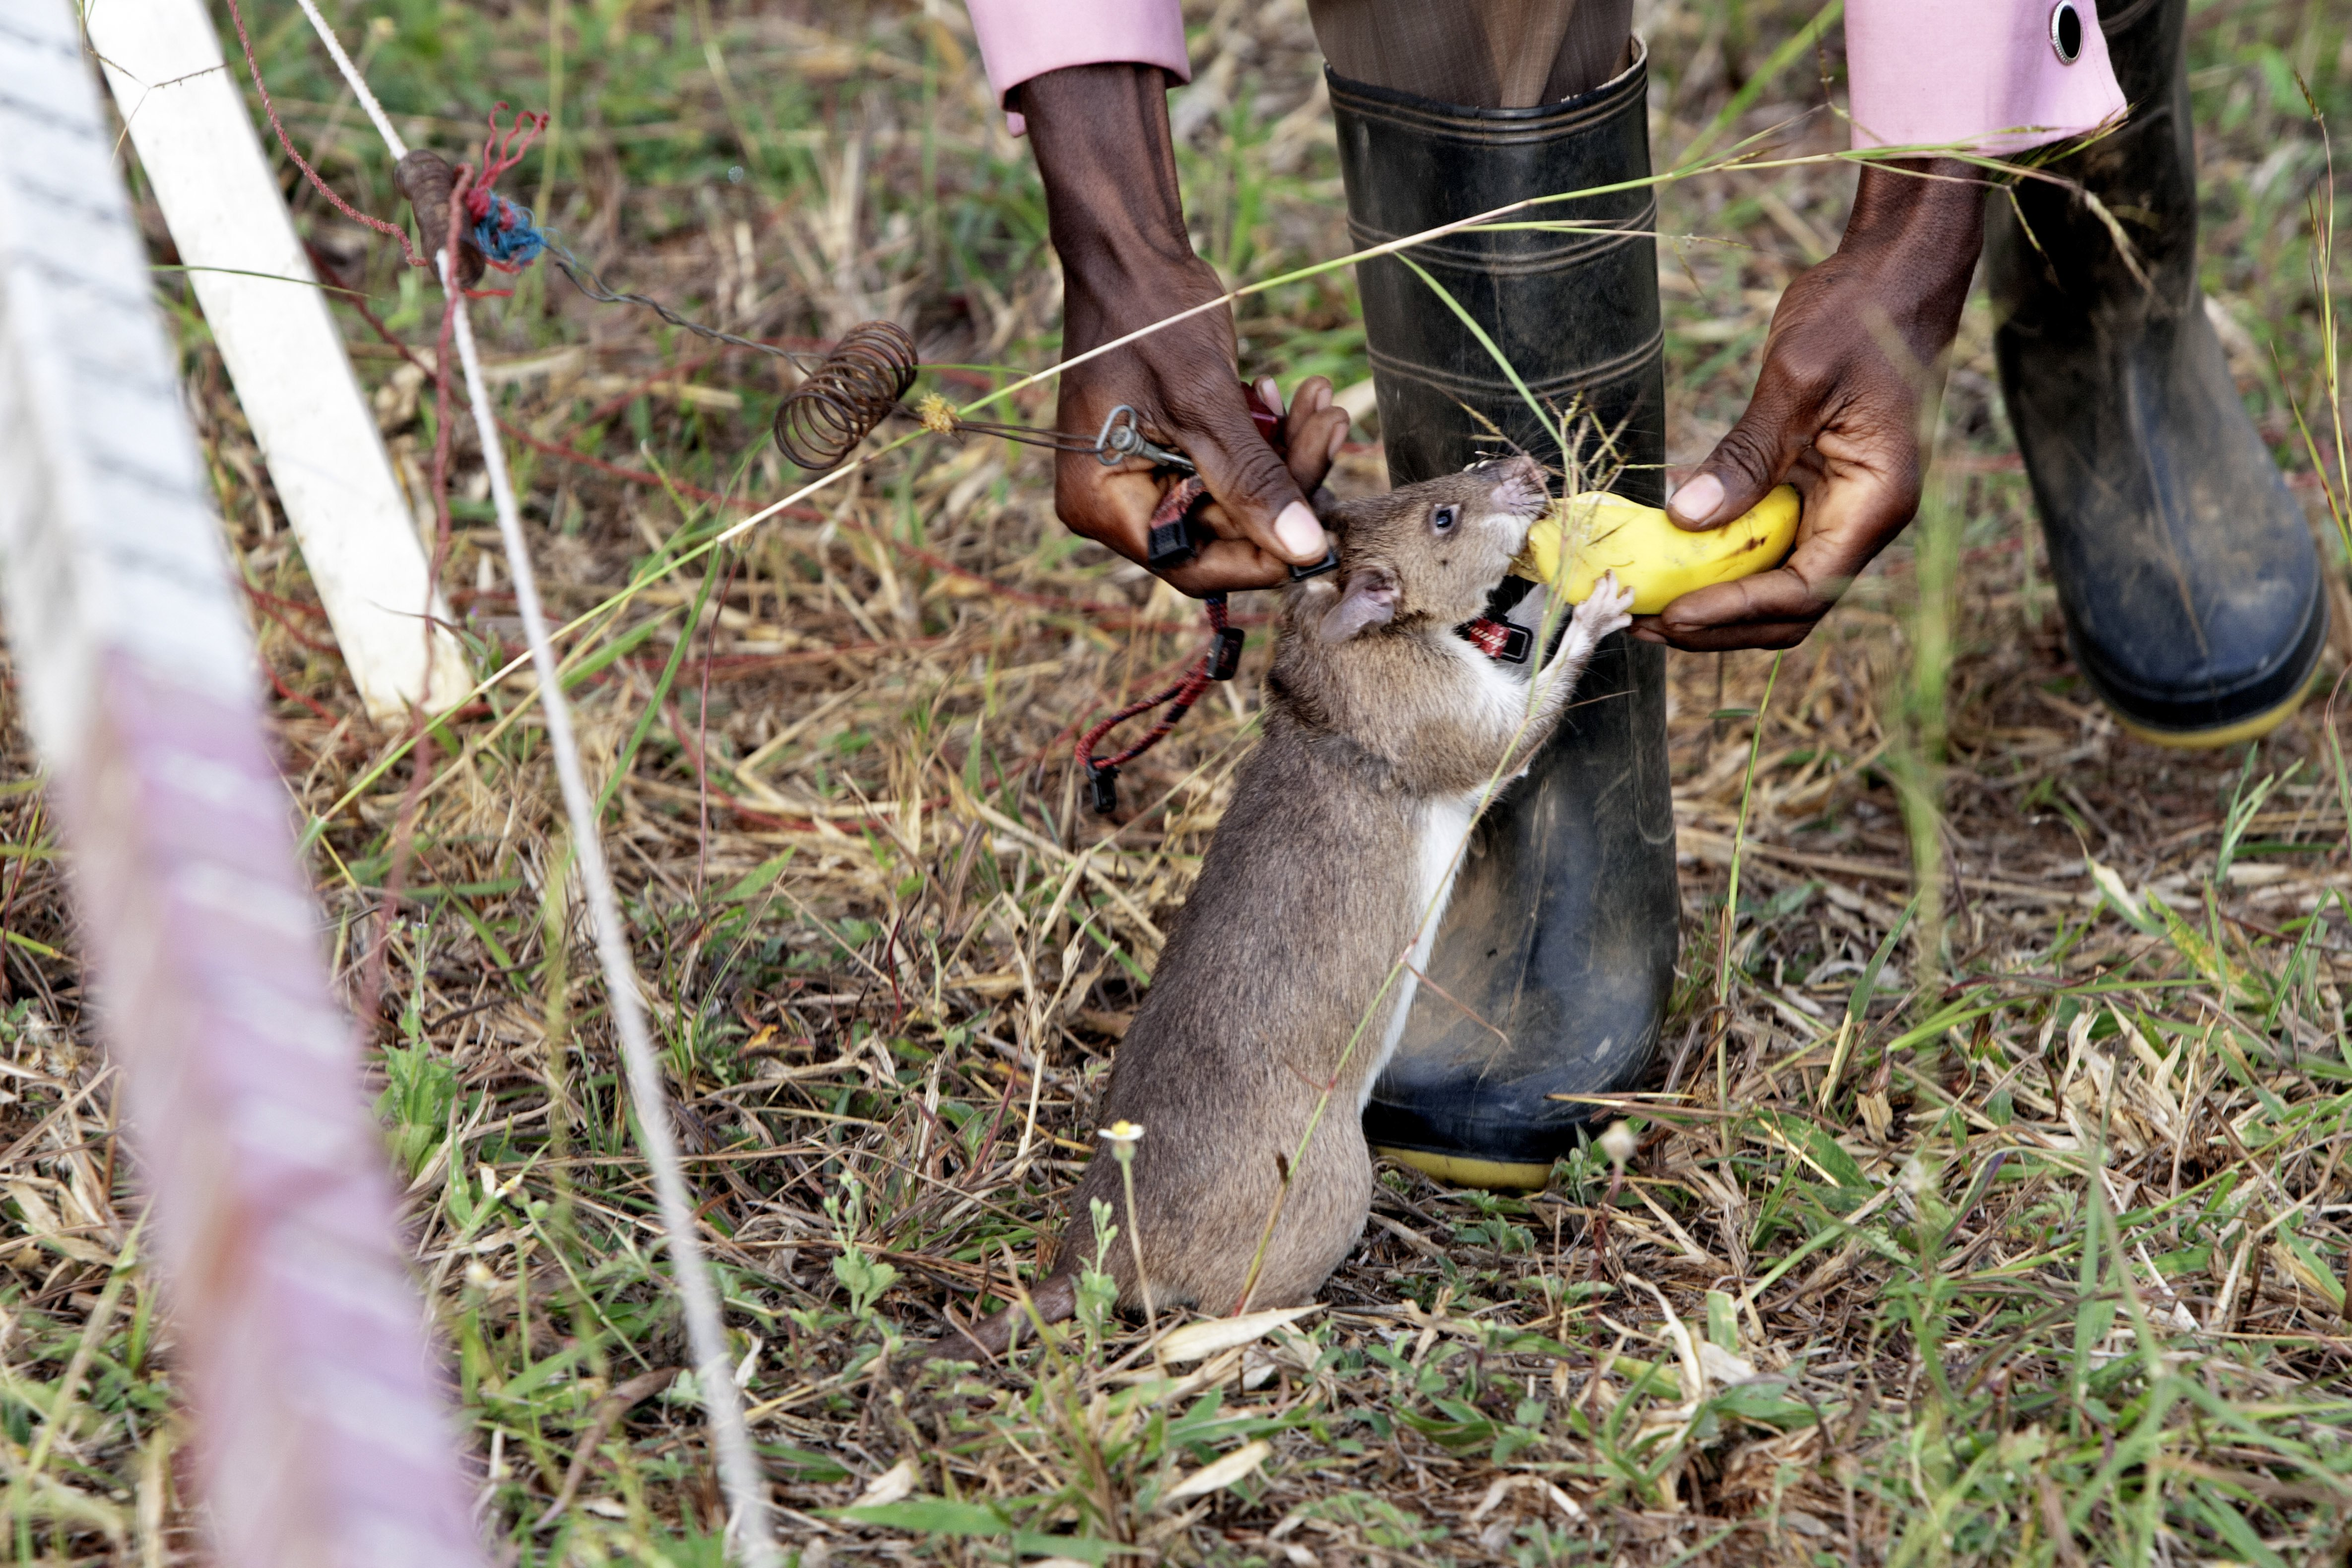 Local trainer Peter Mushi gives one of the rats a piece of banana as a reward A HeroRAT sniffs out a mine on June 20, 2014 in Morogoro, Tanzania. The rats are rewarded with a sweet or fruit when a mine or explosive device is found.